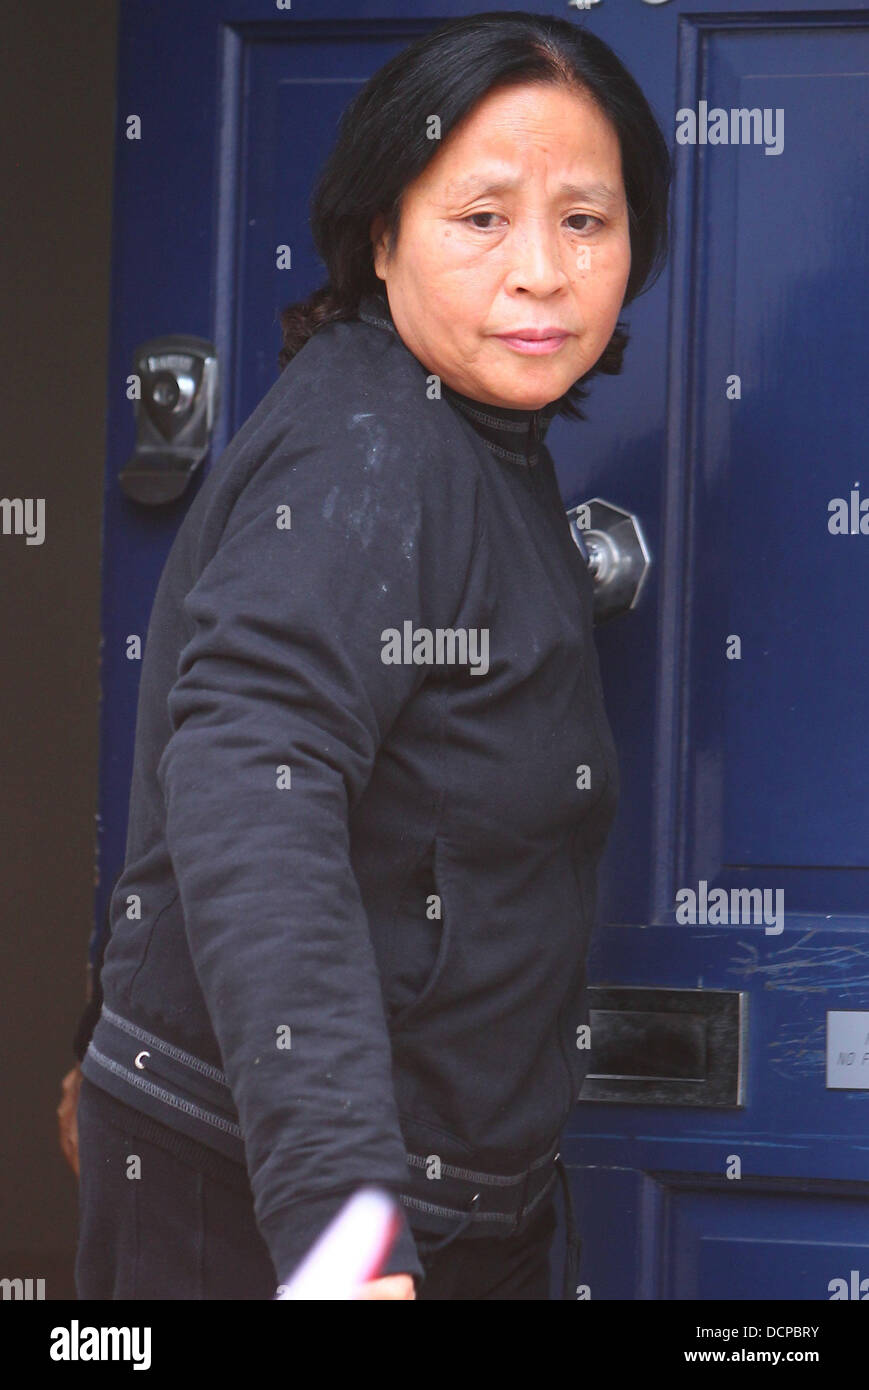 The Mother Of Tinglan Hong Outside Her Daughter S House The Chinese Stock Photo Alamy